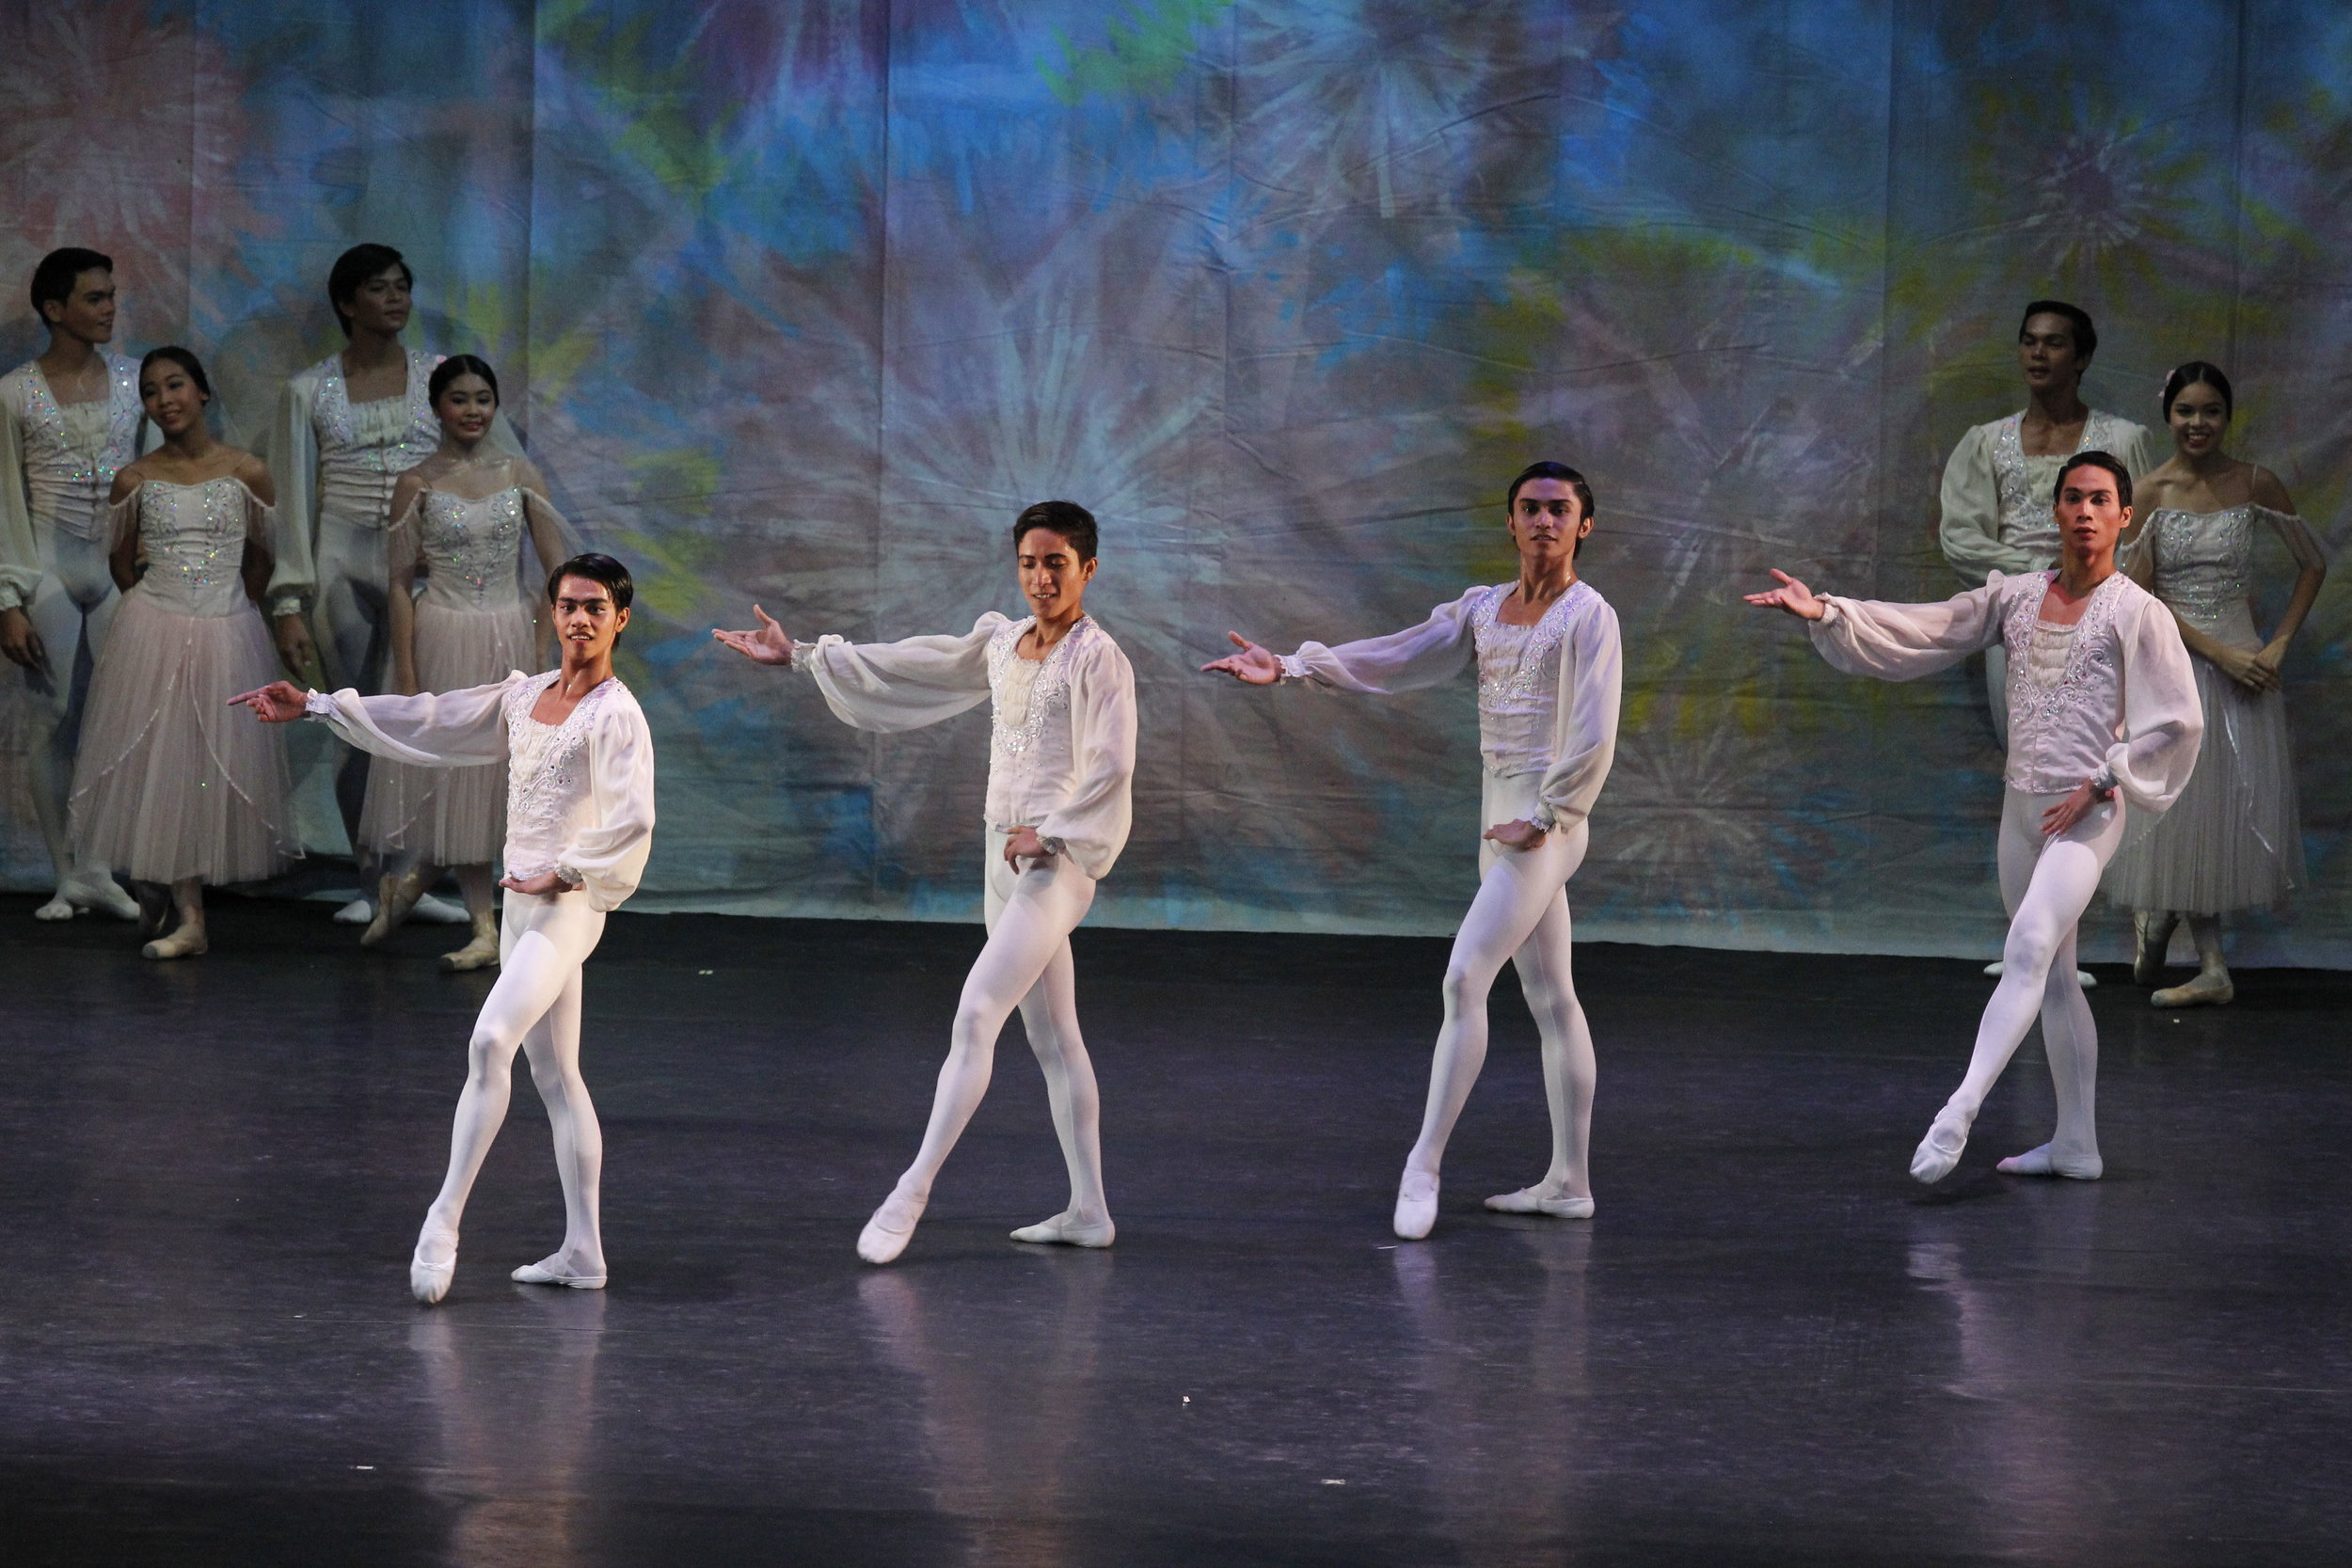 Robert (second from right) realized he was already enjoying ballet when he performed in a recital. He is seen here in  Just Dance,  Ballet Manila's summer workshop recital in 2013. Photo by Ocs Alvarez